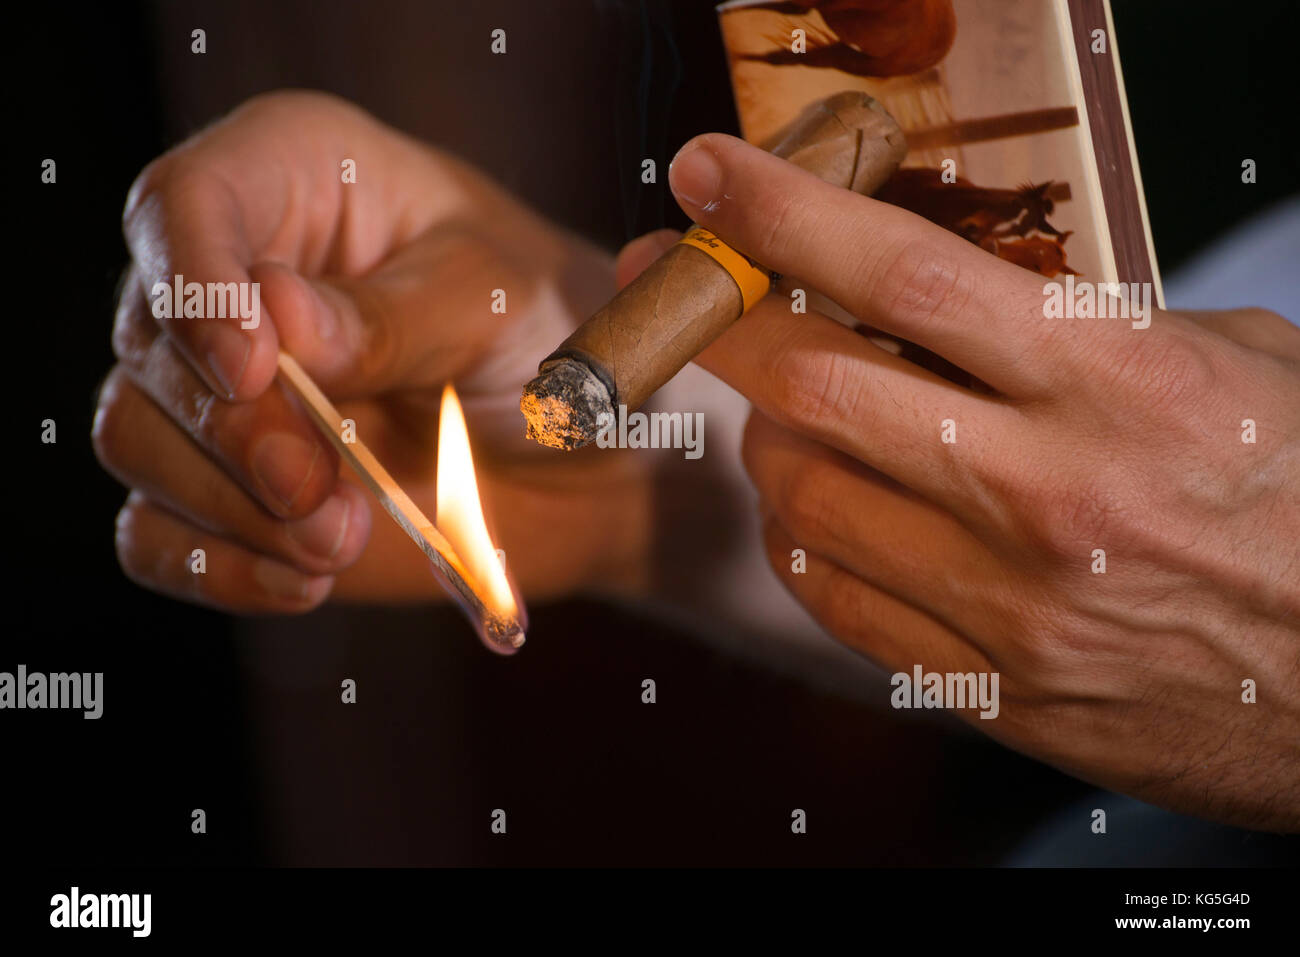 2 hands with cigar and burning match - Stock Image